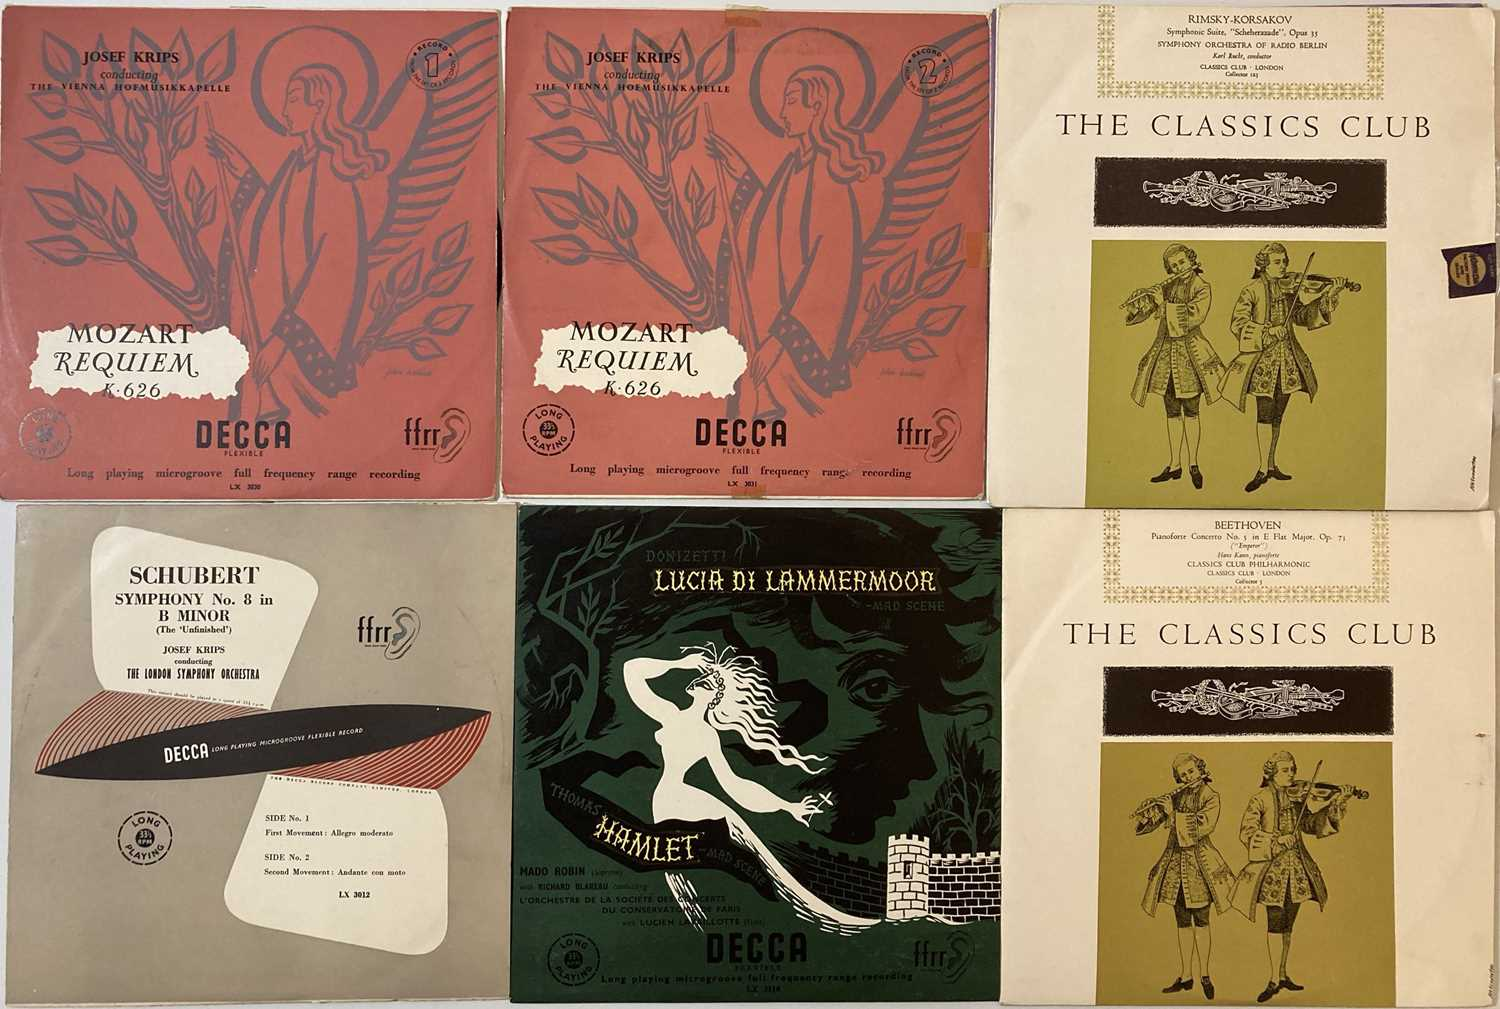 CLASSICAL - LP/78 COLLECTION - Image 2 of 12